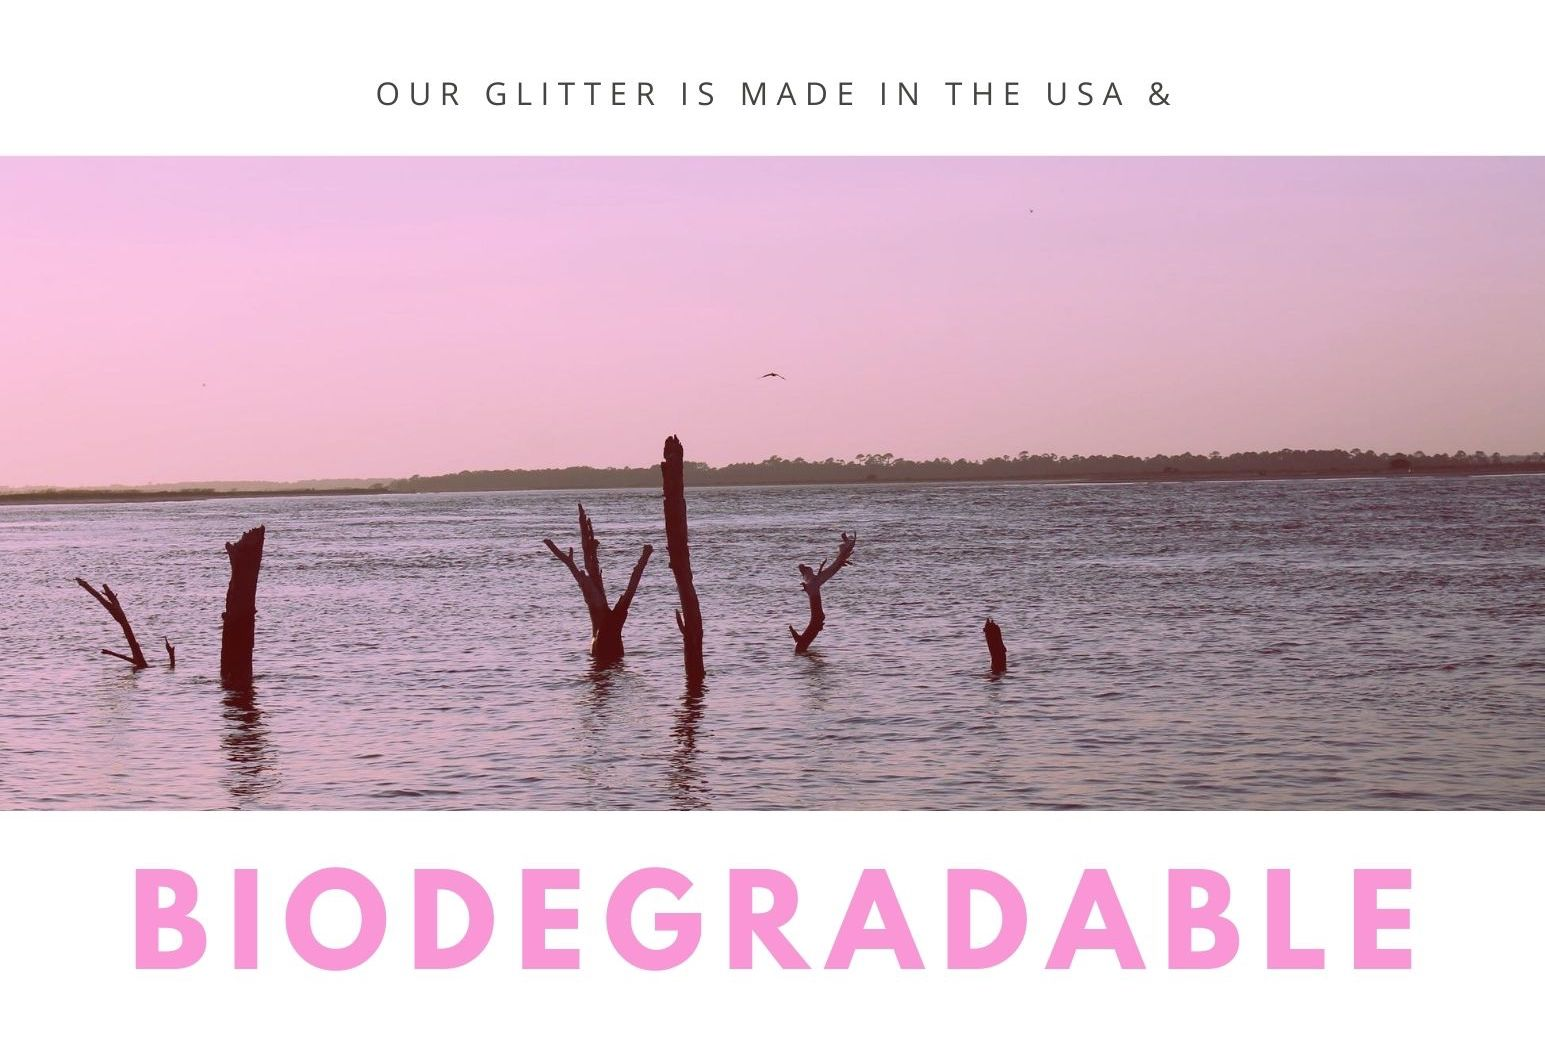 biodegradable glitter made in the usa